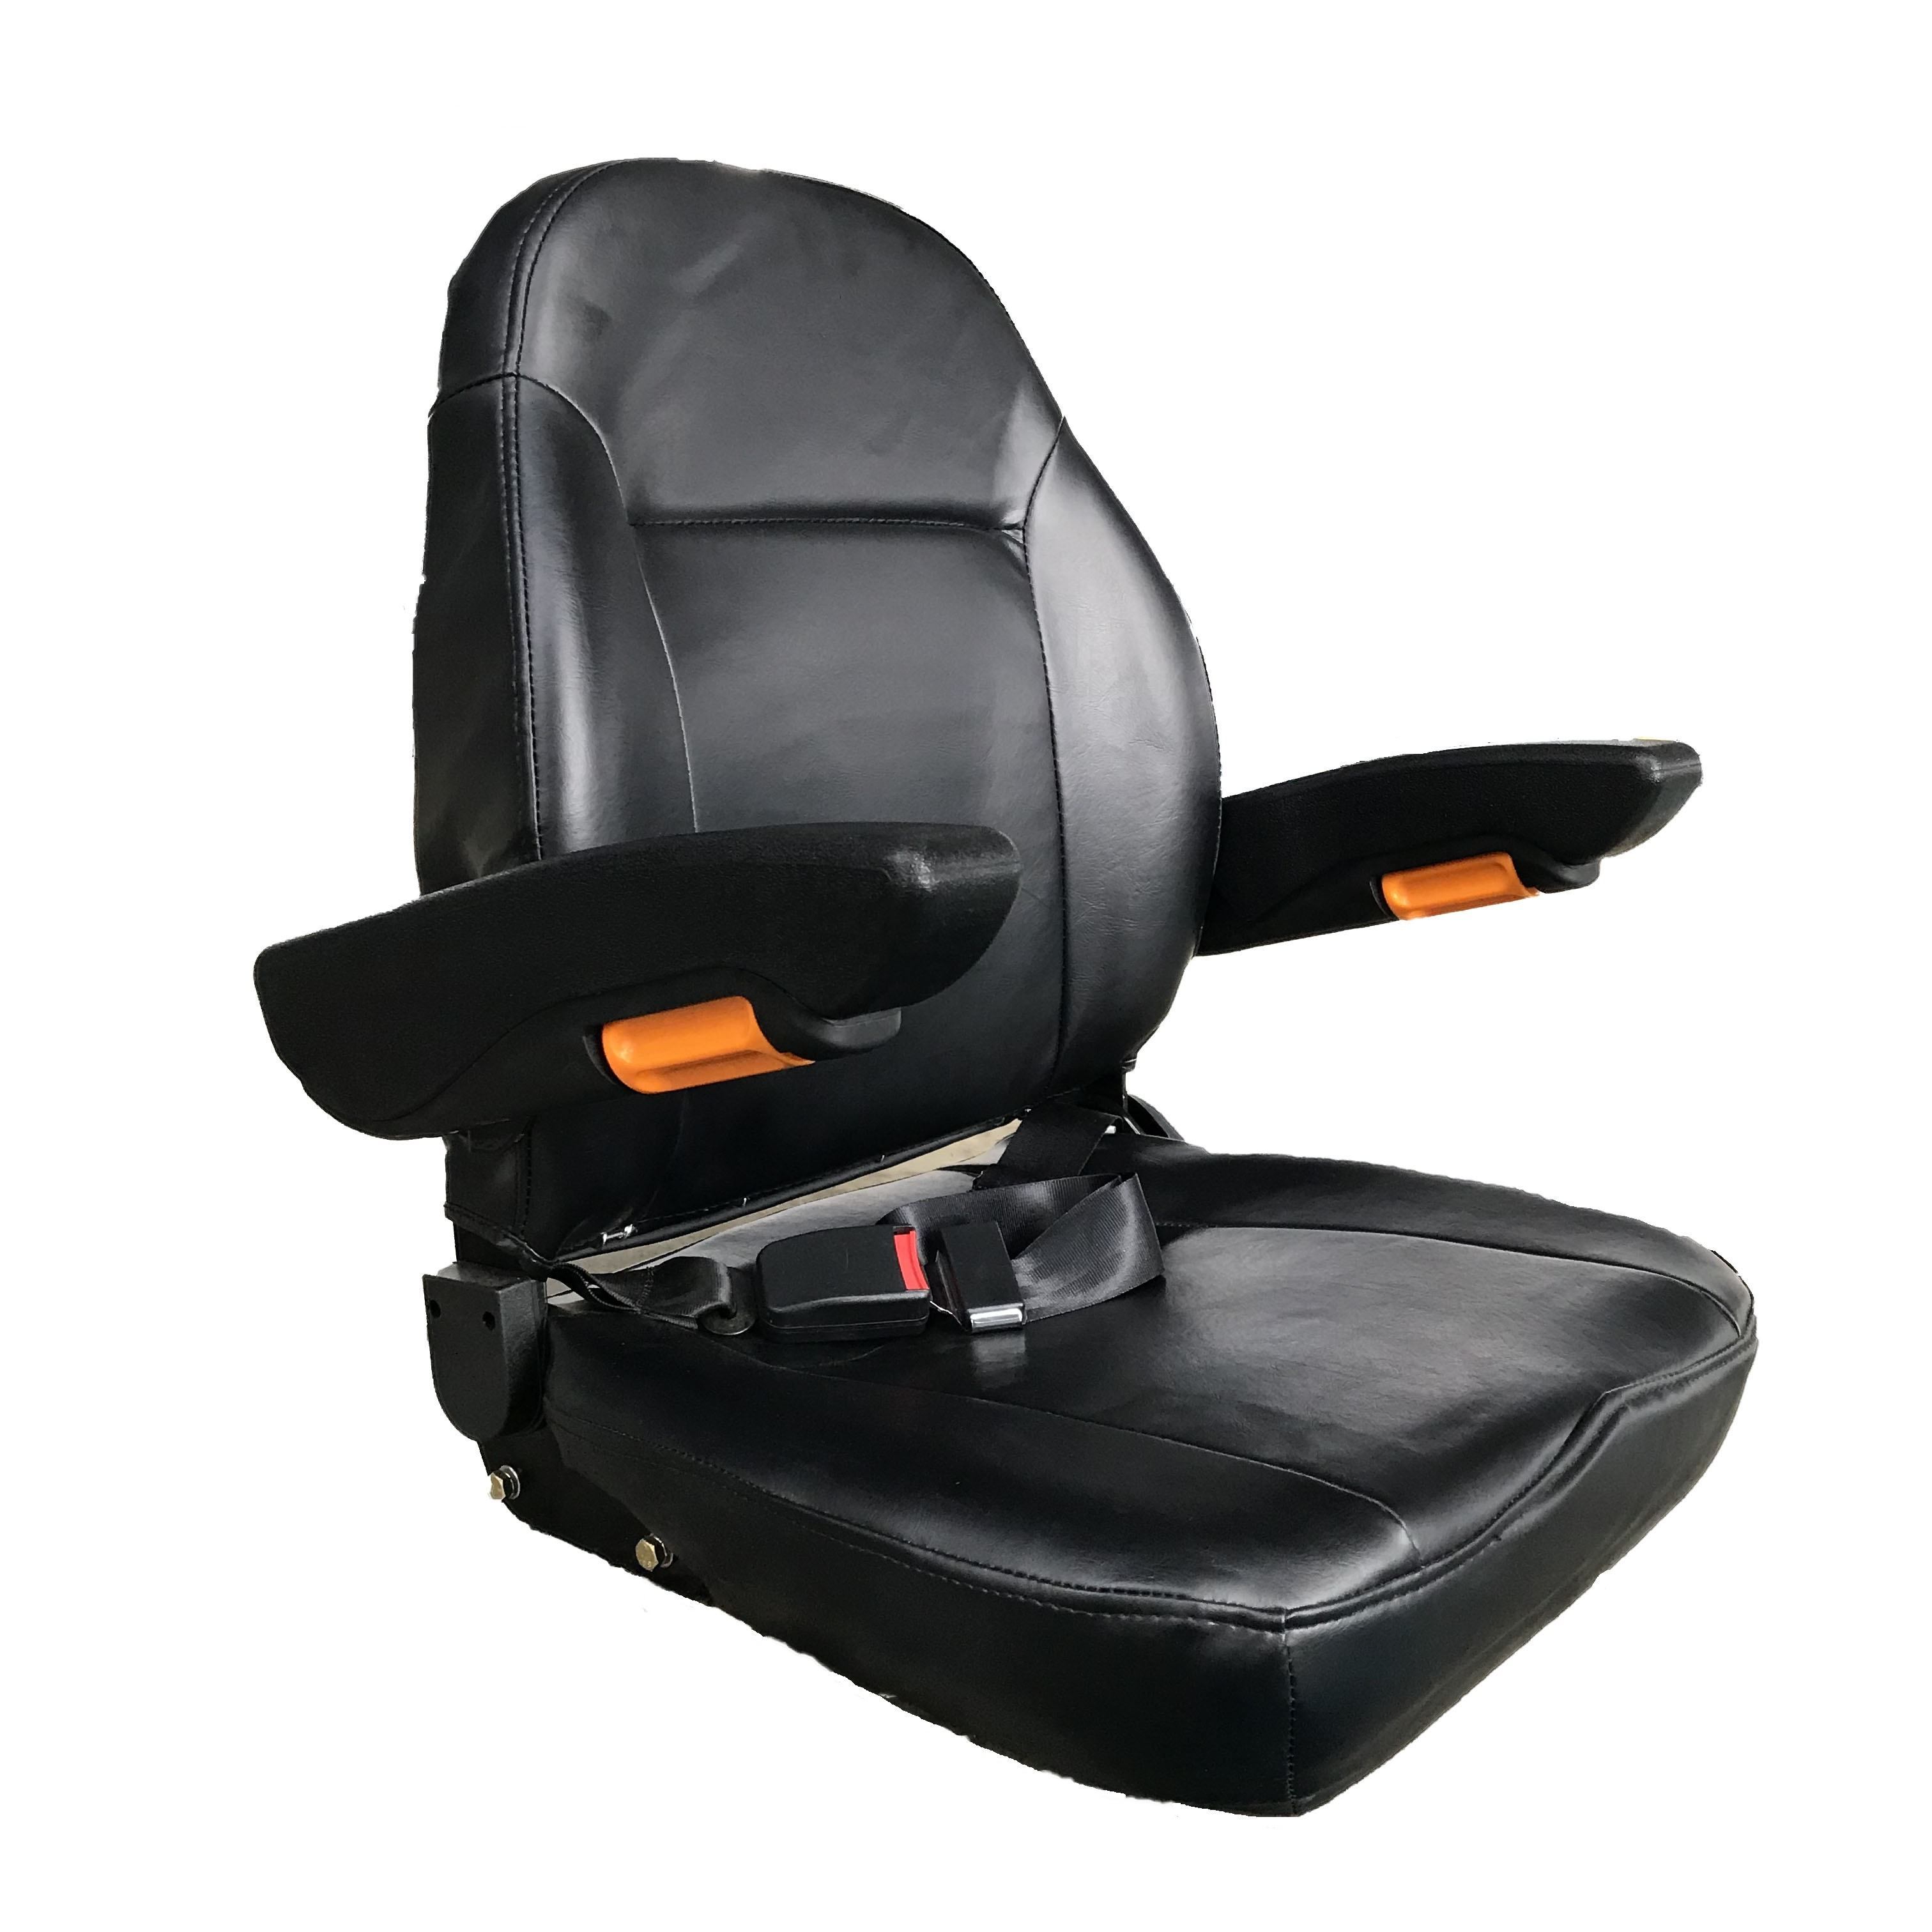 high quality 2 seat for utv/atv 4x4 off road hunting vehicles